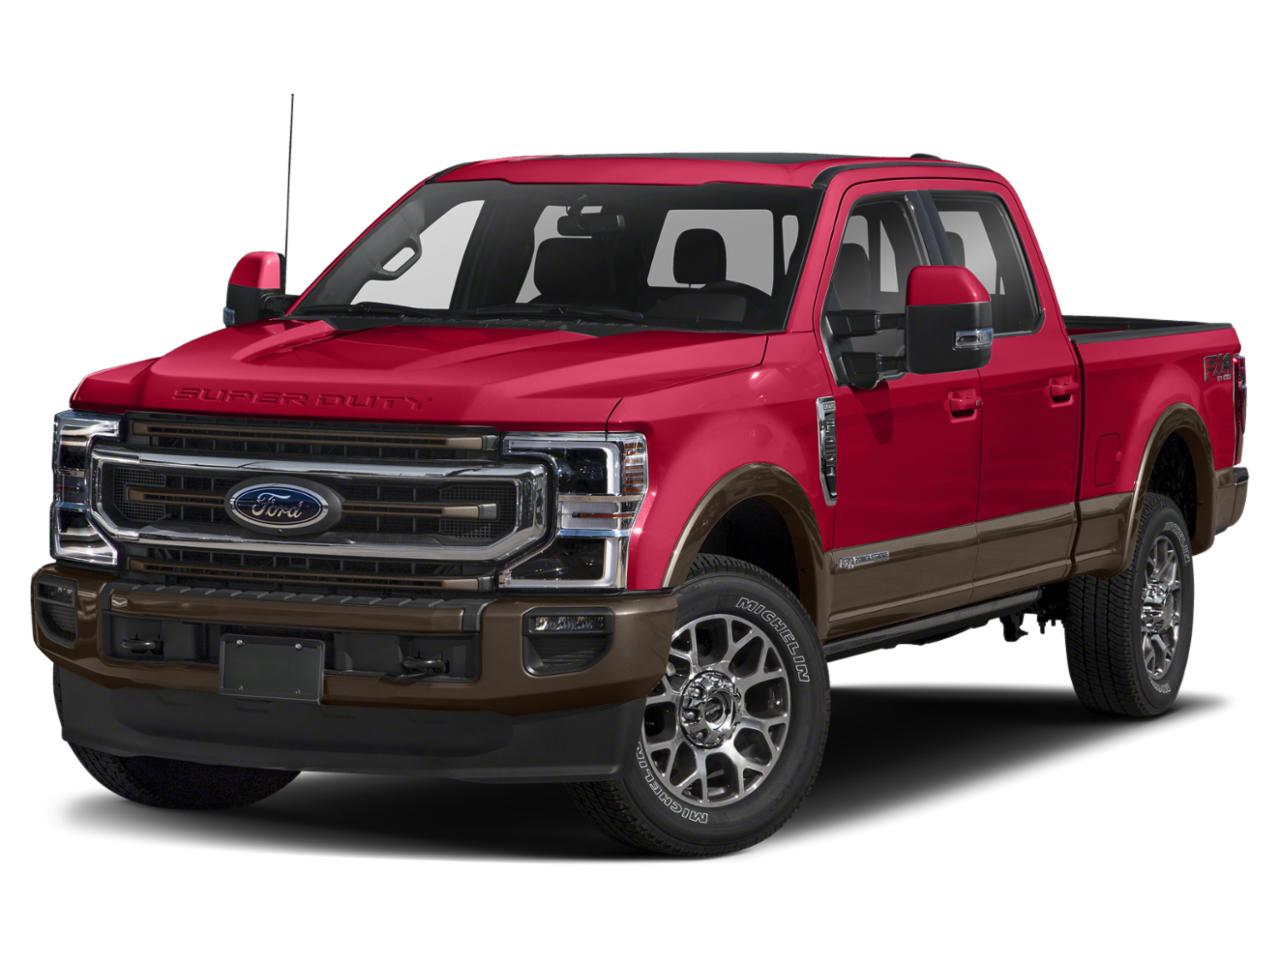 Red Metallic 2020 Ford F-350SD KING RANCH Crew Cab Pickup Mooresville NC